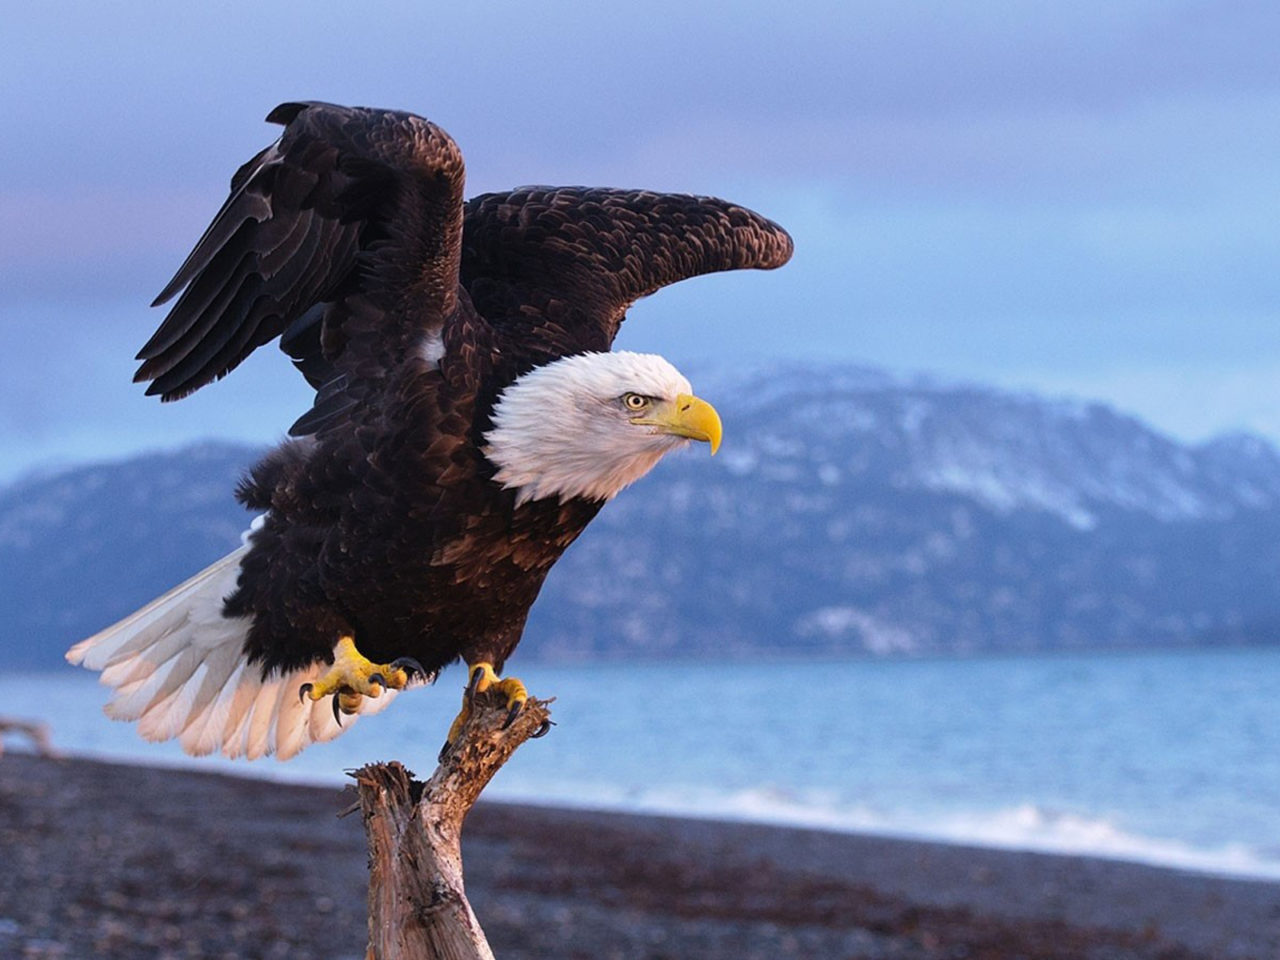 Hunting Iphone Wallpaper Bald Eagle Life Expectancy 20 Years In The Wild Hd